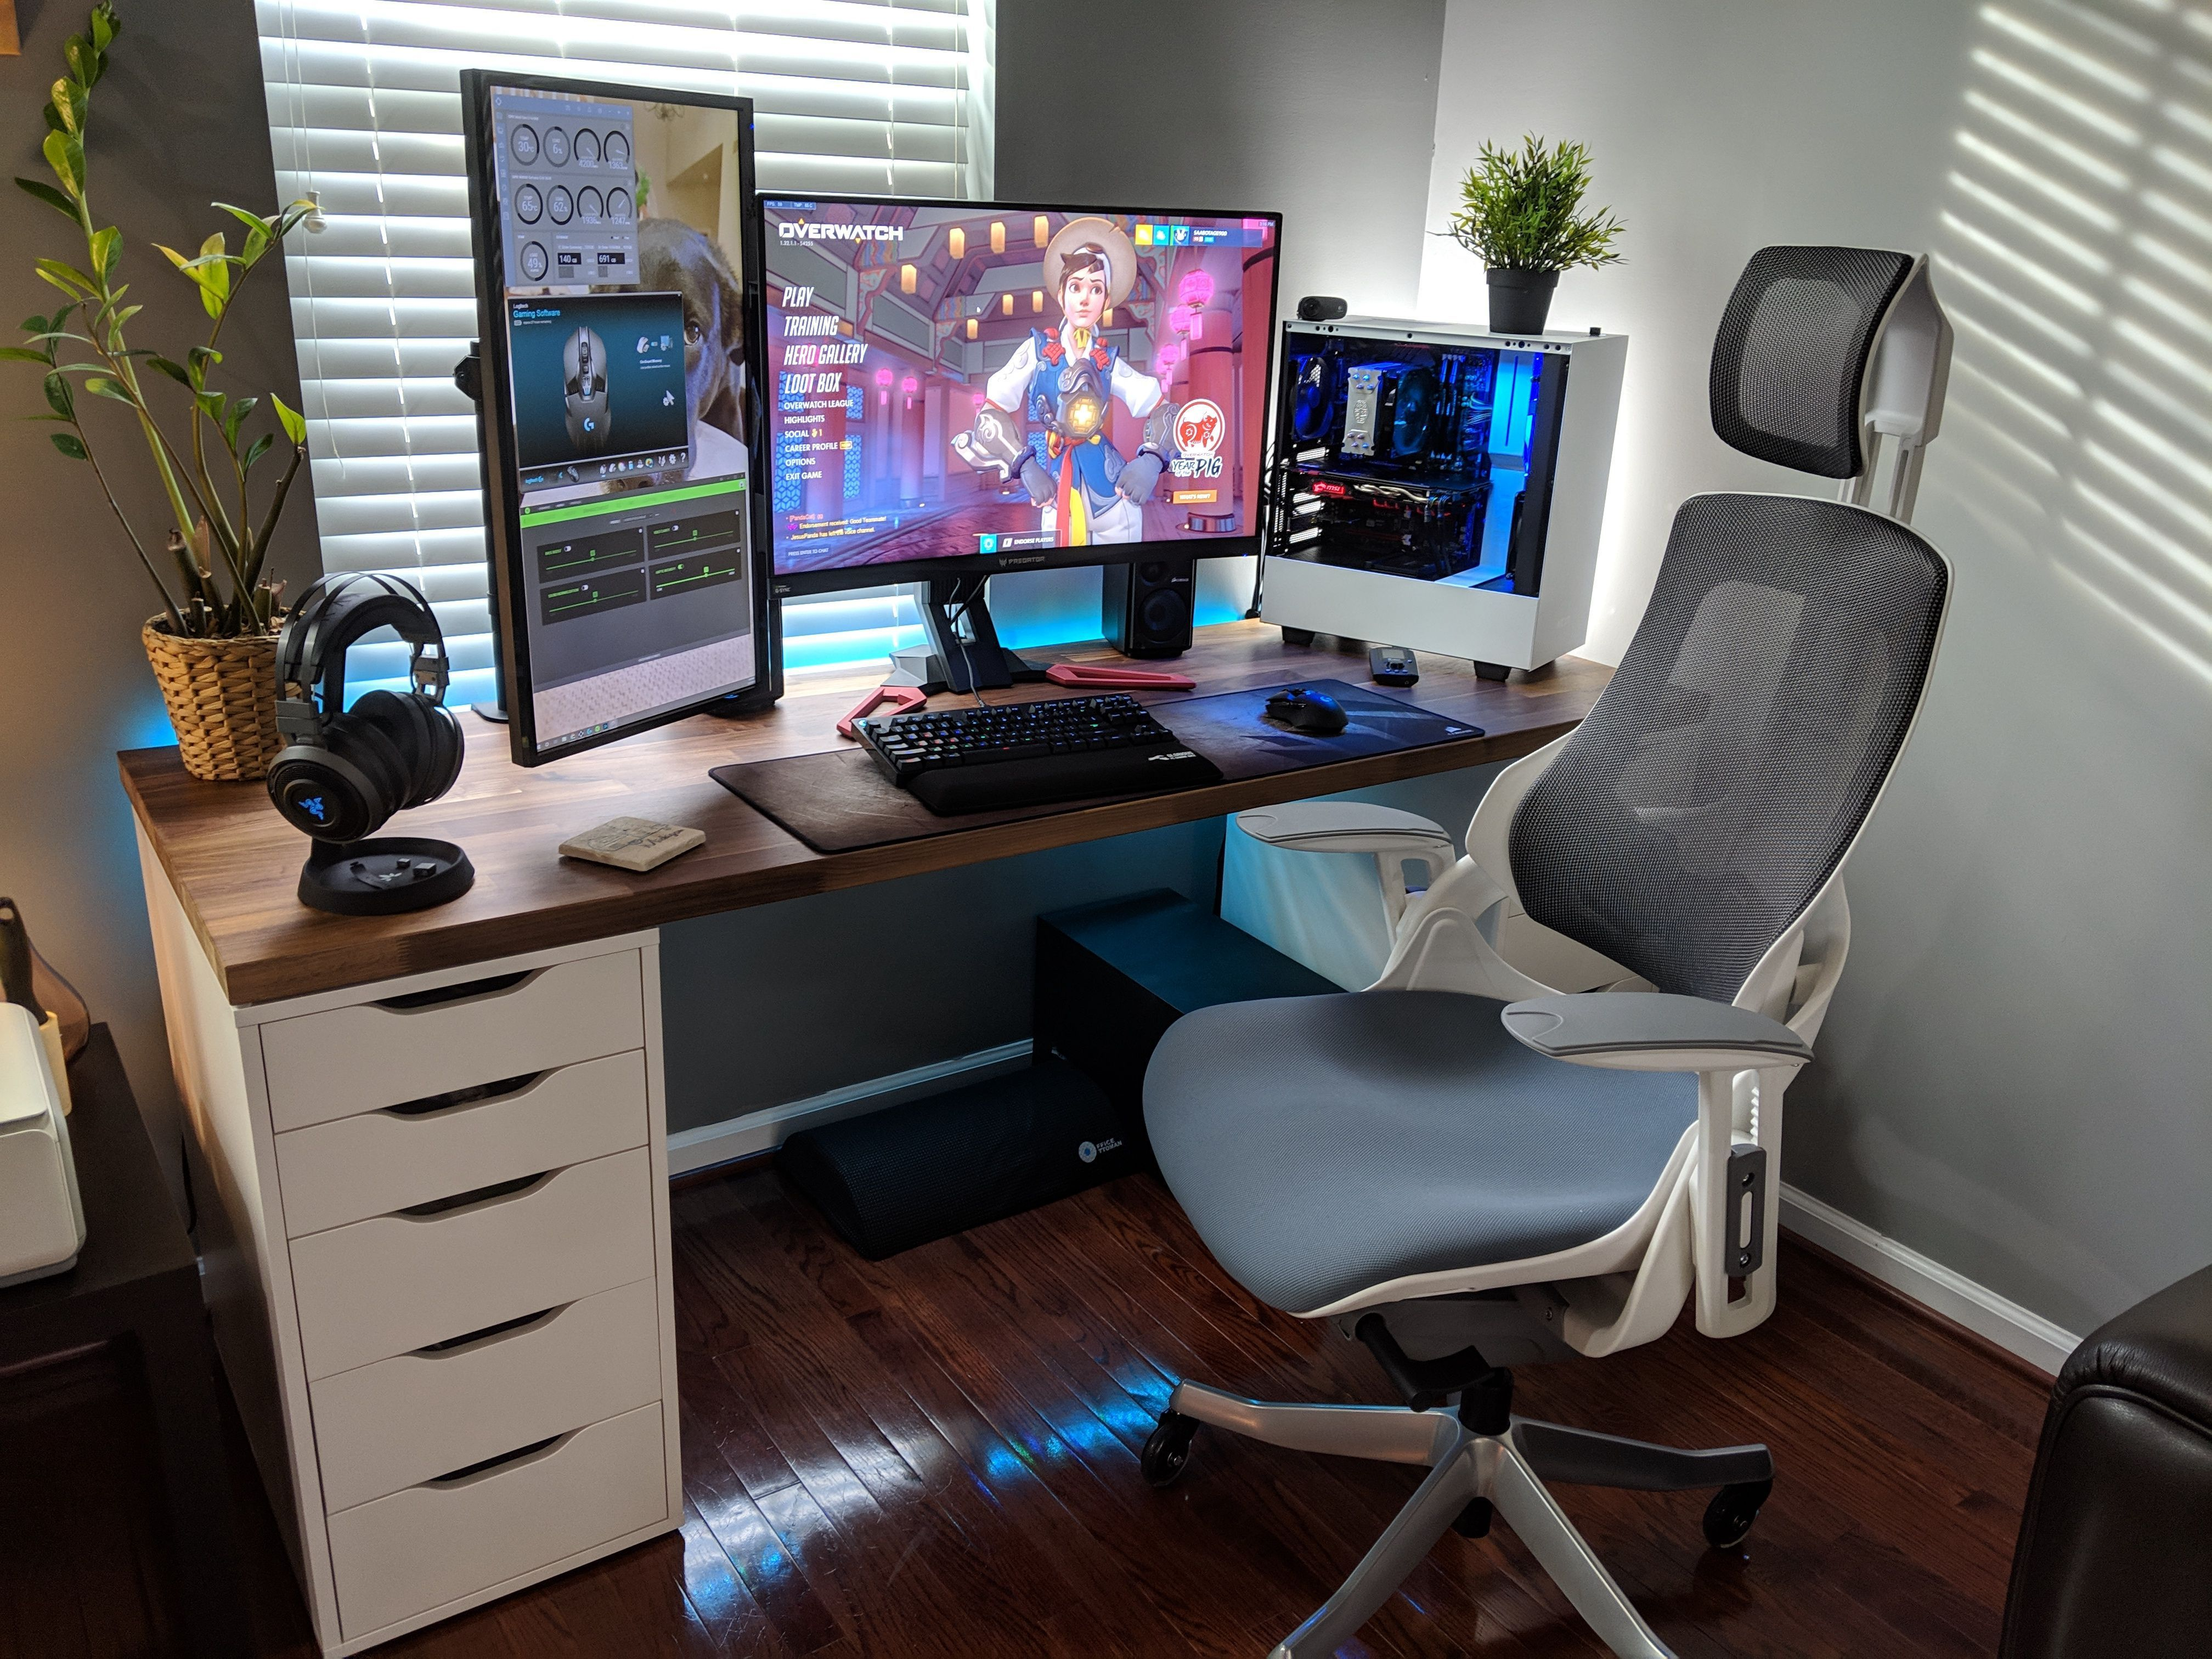 Awesome Setup With An Uplift Pursuit Ergo Chair By Saabotage900 Click For More Pics And Specs Bat Best Computer Chairs Home Office Setup Gaming Desk Setup